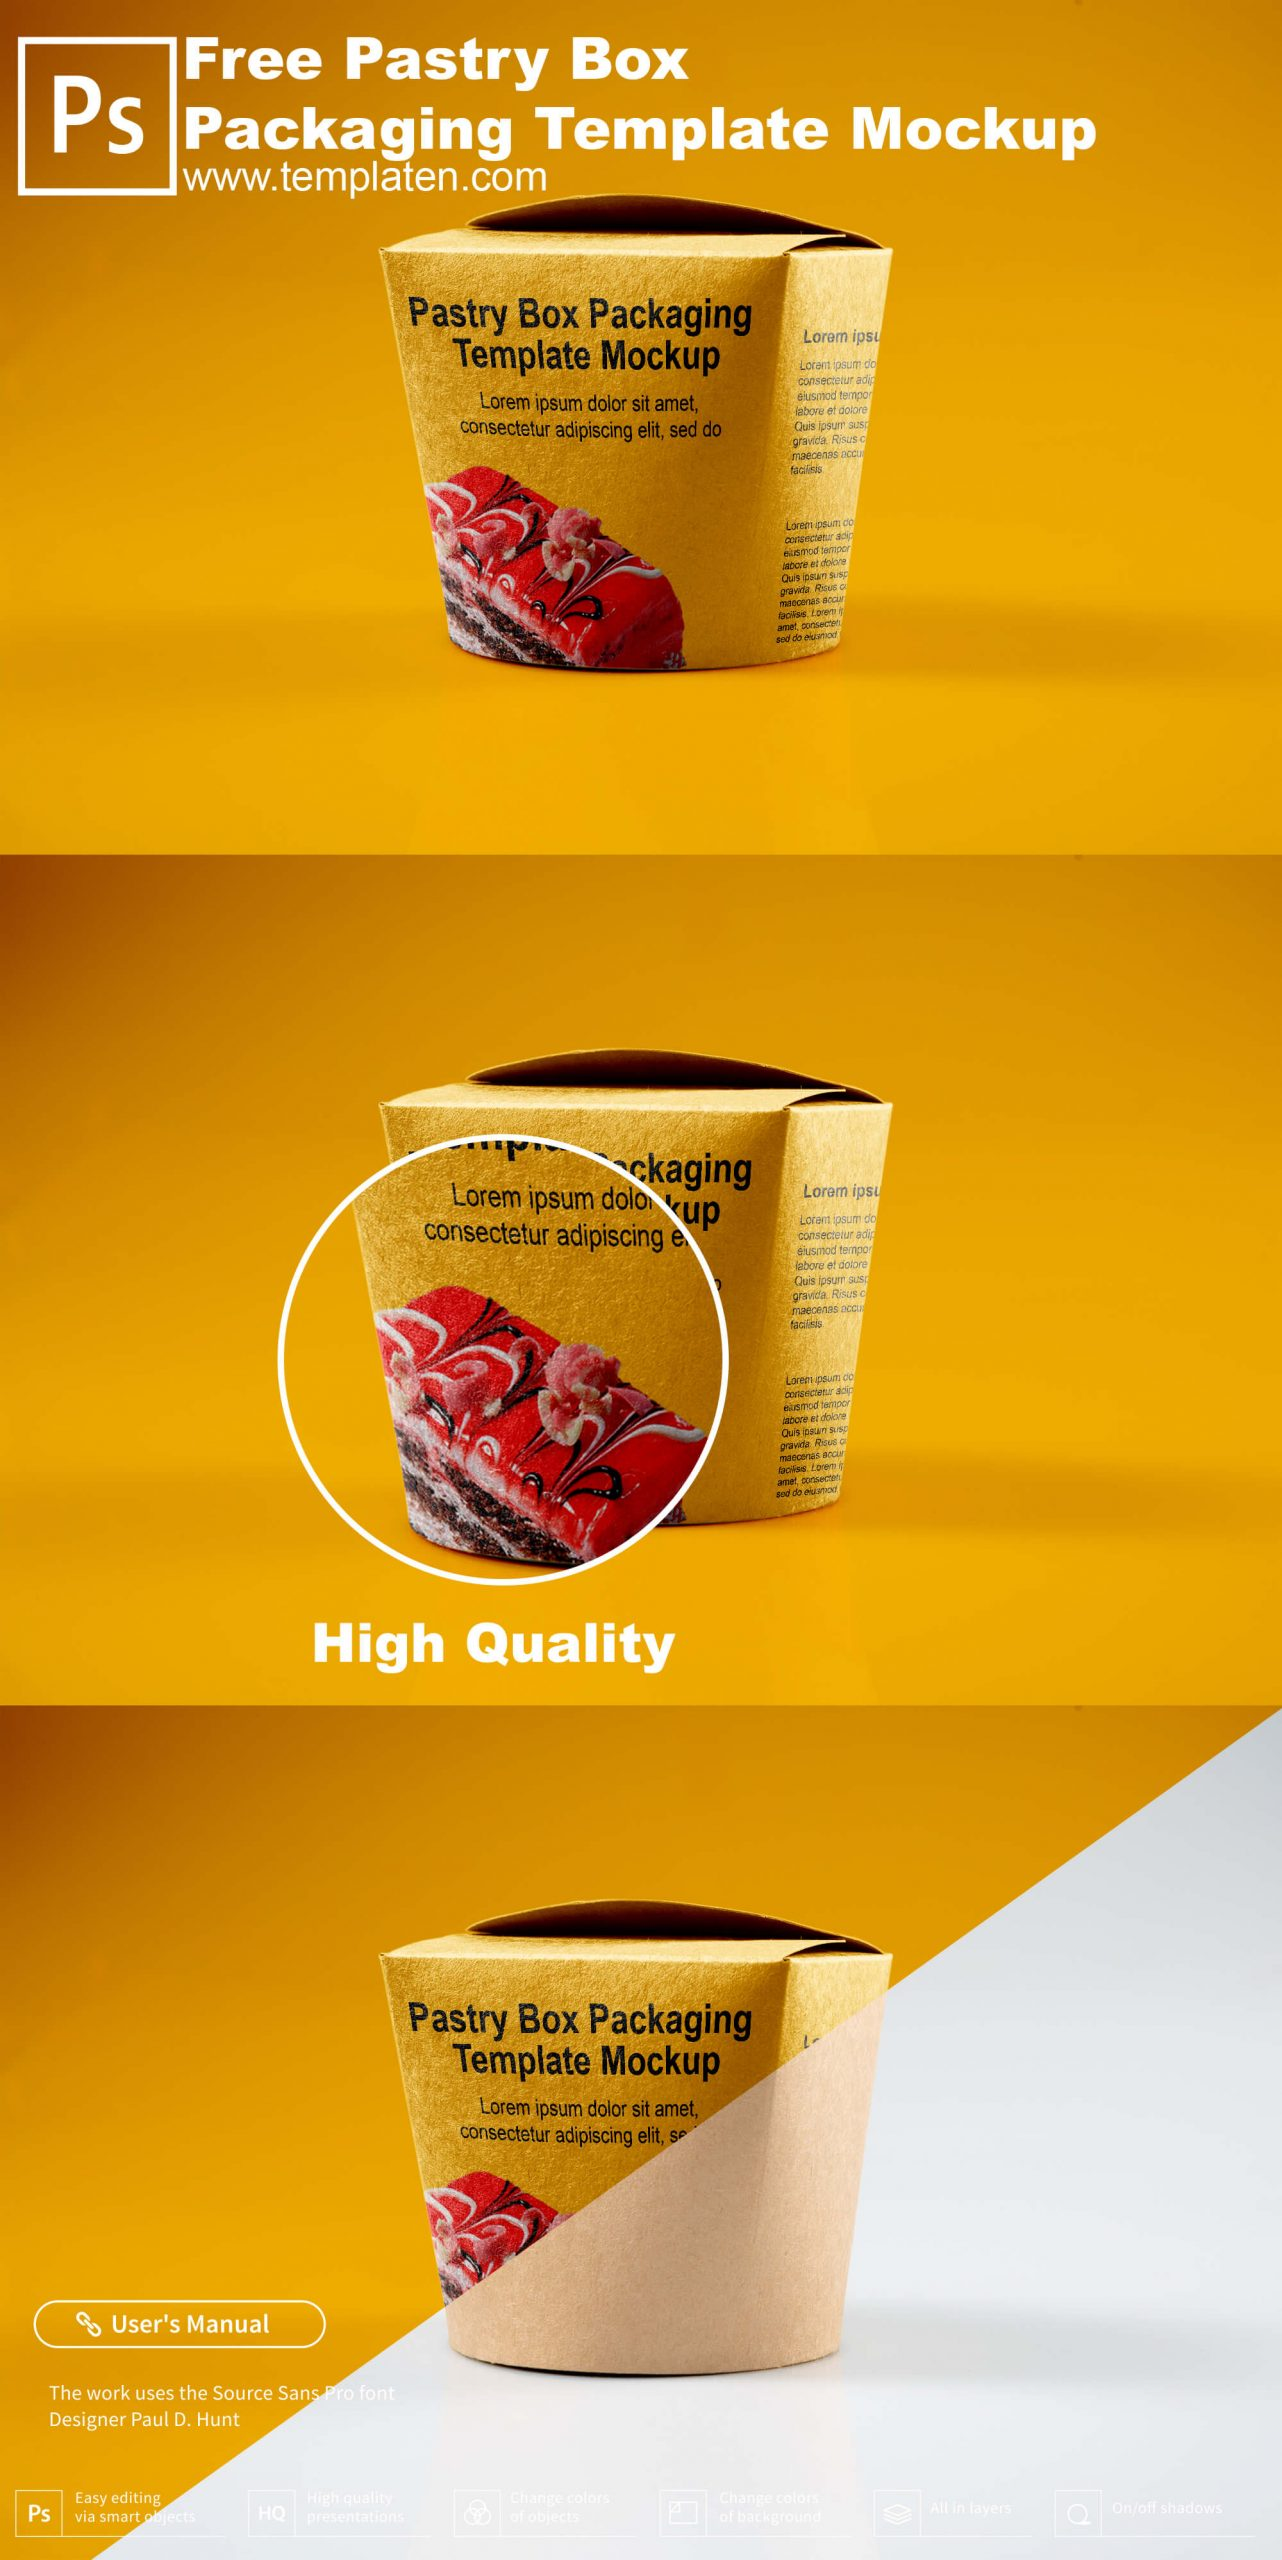 Free Pastry Box Packaging PSD Template